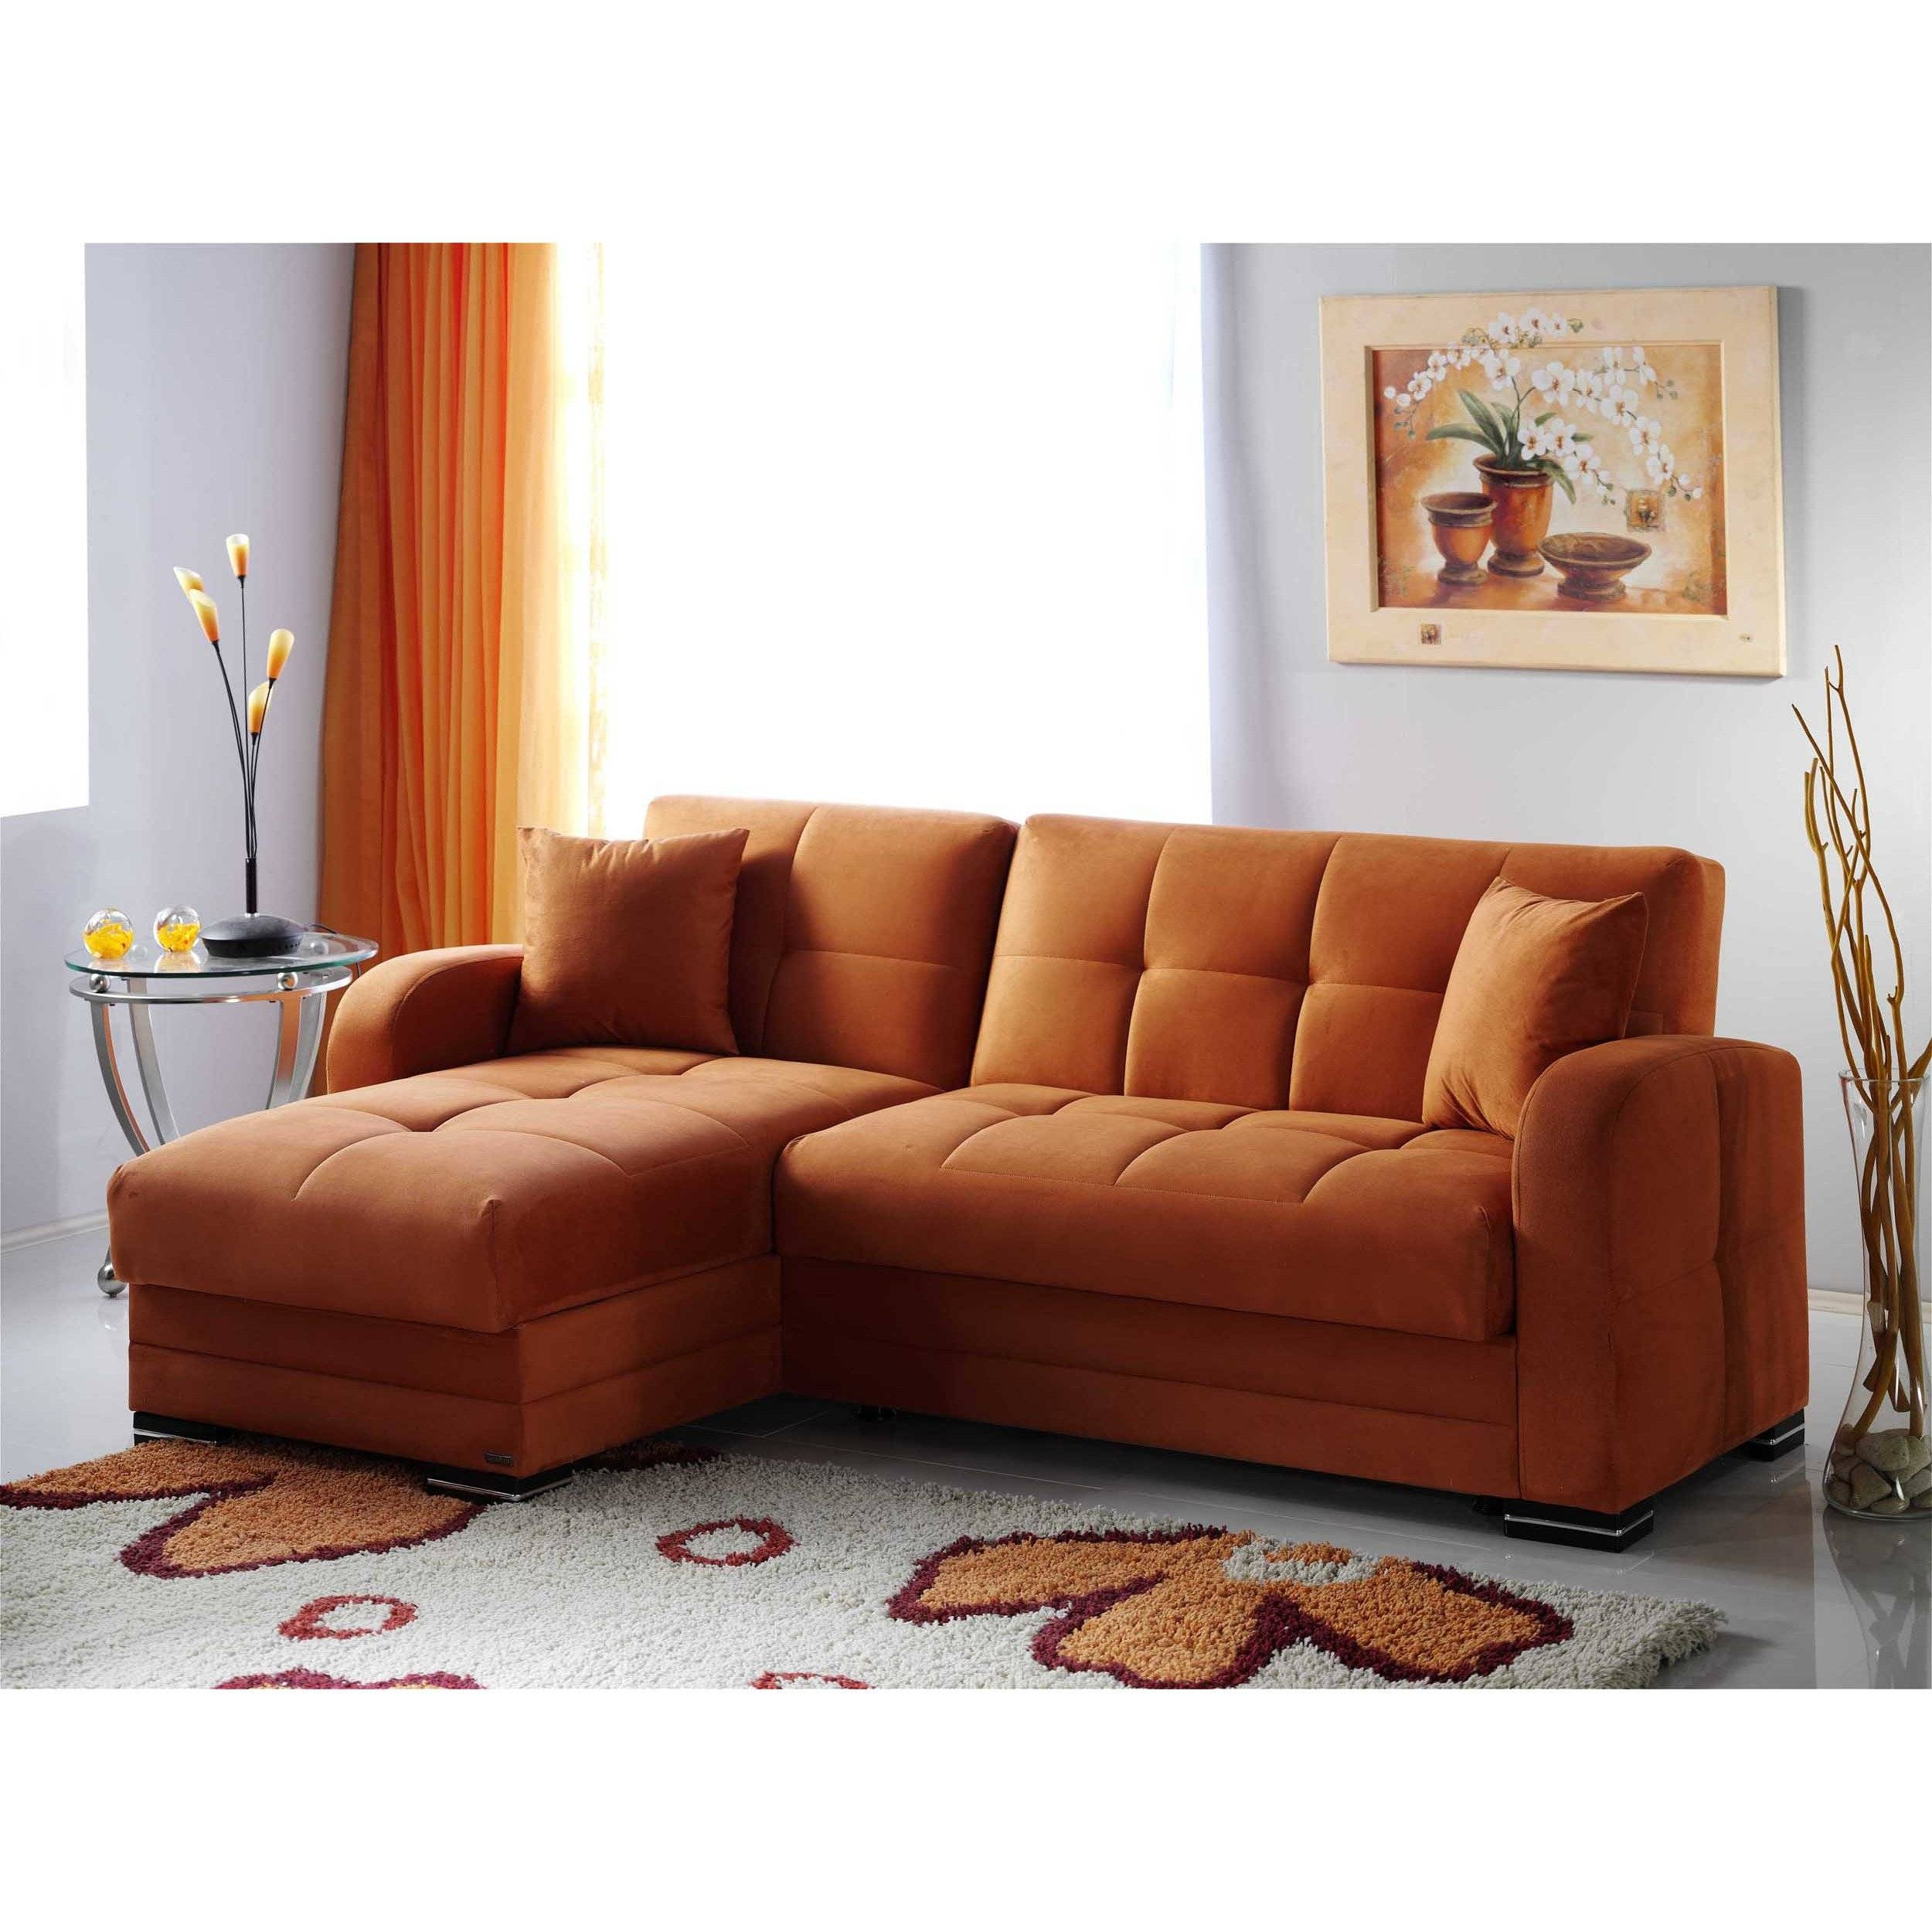 Kubo Rainbow Orange Sectional Sofasunset throughout Orange Sectional Sofa (Image 22 of 30)